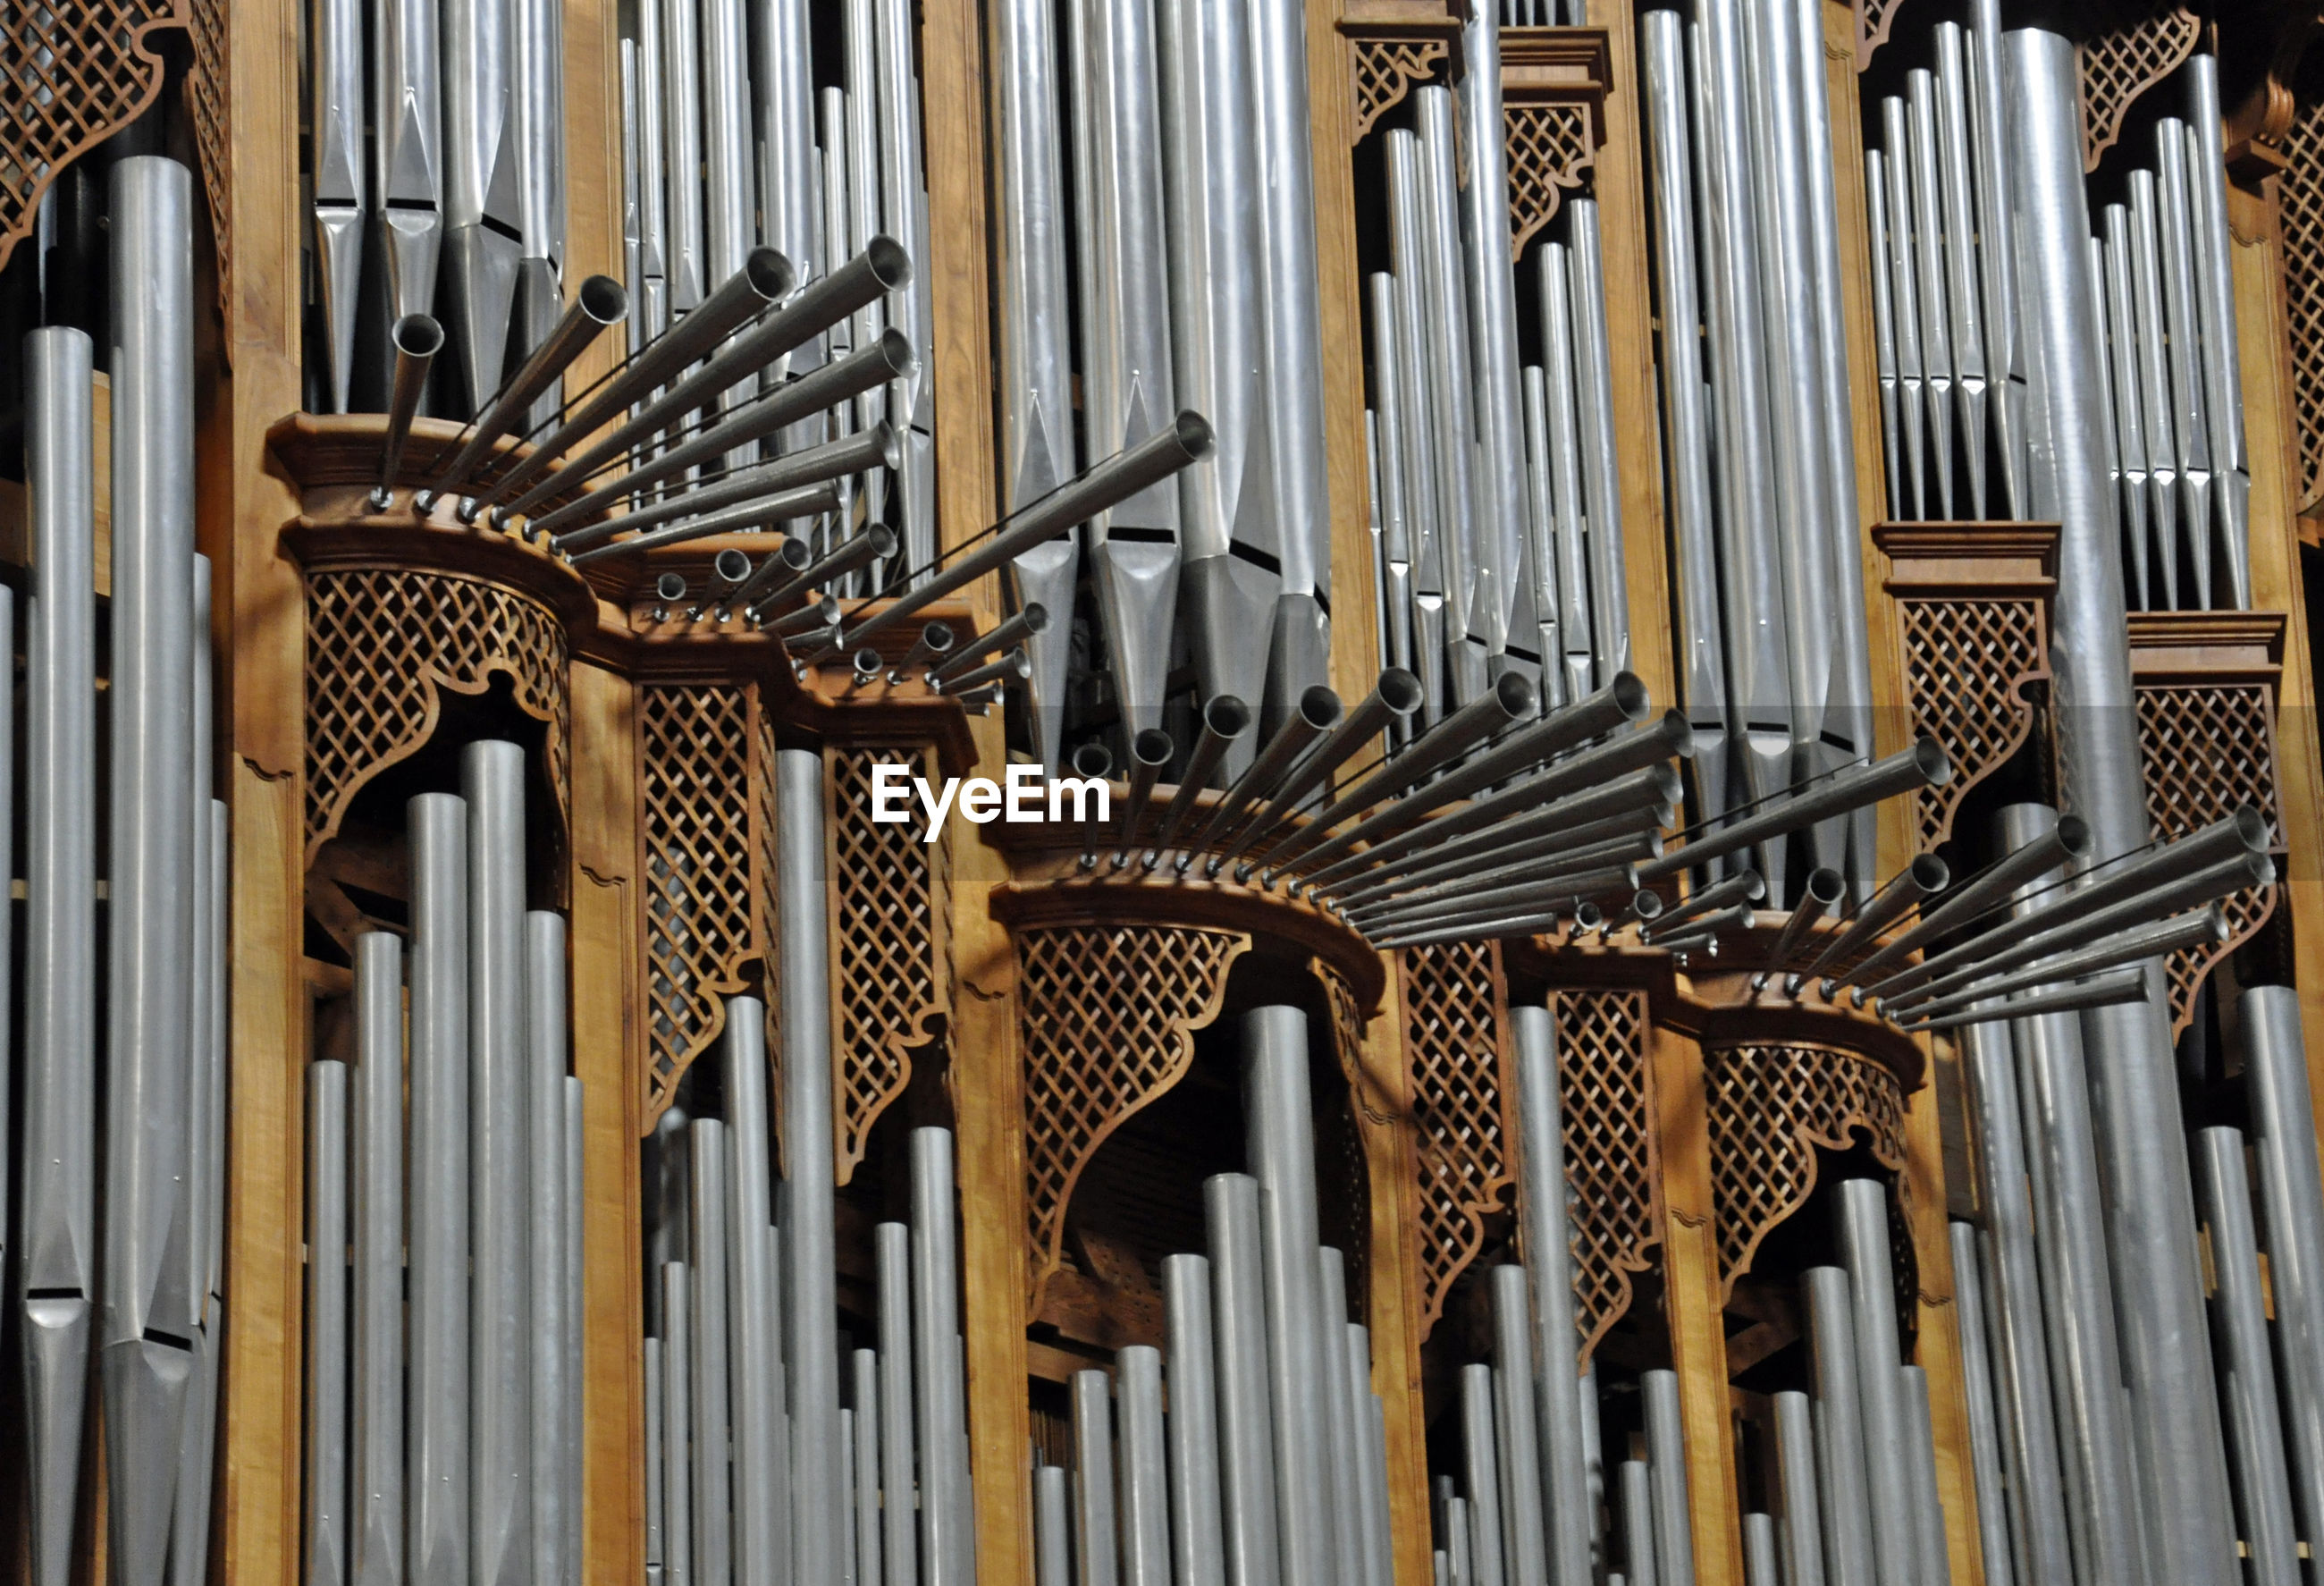 Low angle view of pipe organs in church